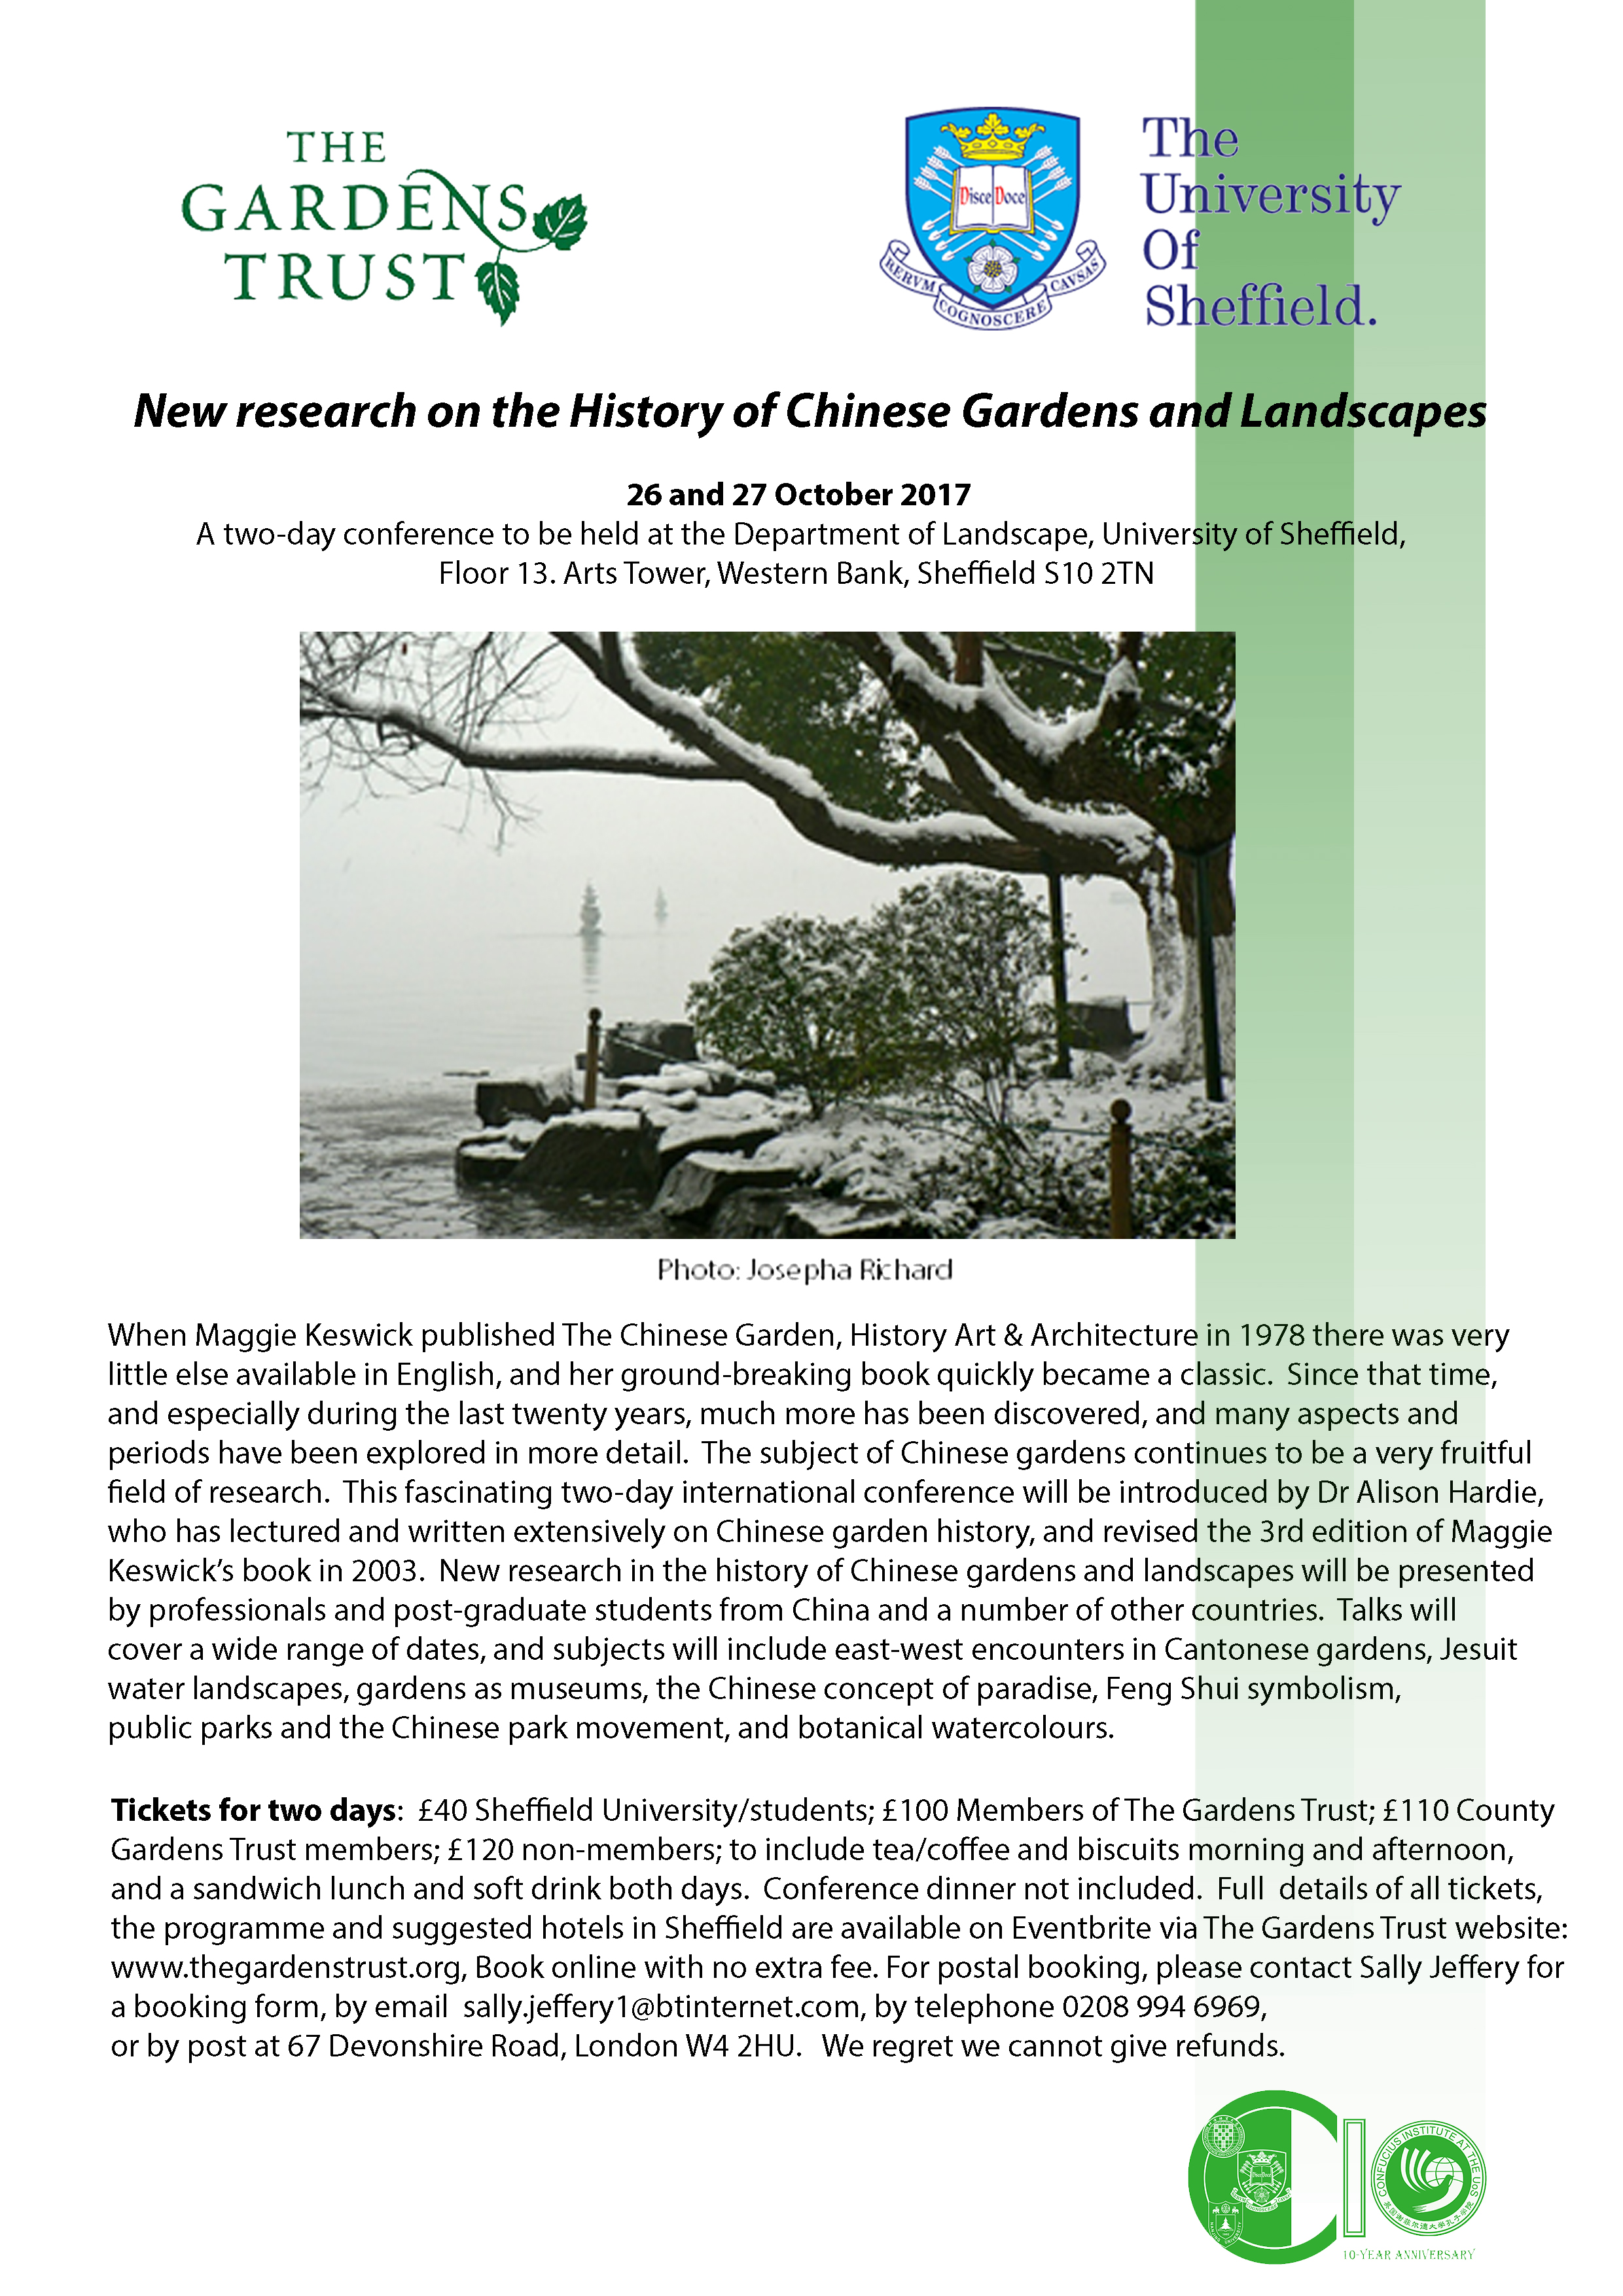 Conference: New Research On The History Of Chinese Gardens